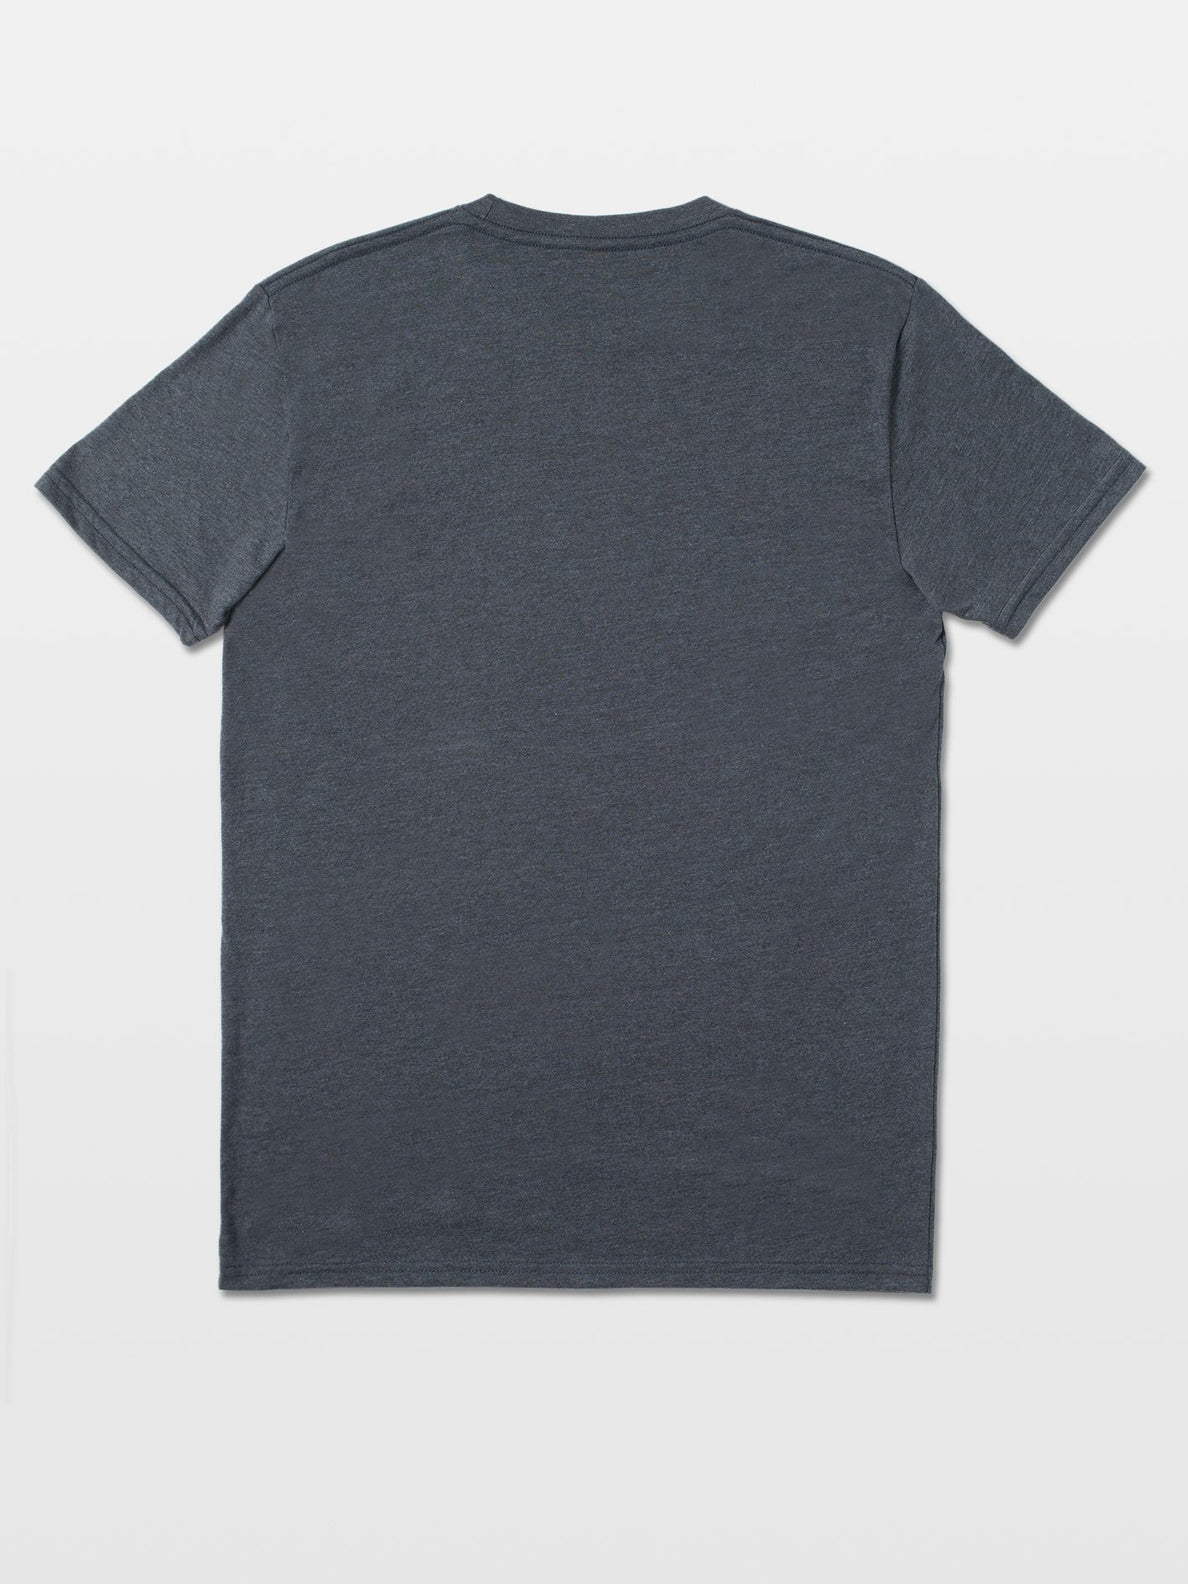 VIA STONE SHORT SLEEVE HEATHER TEE - HEATHER BLACK